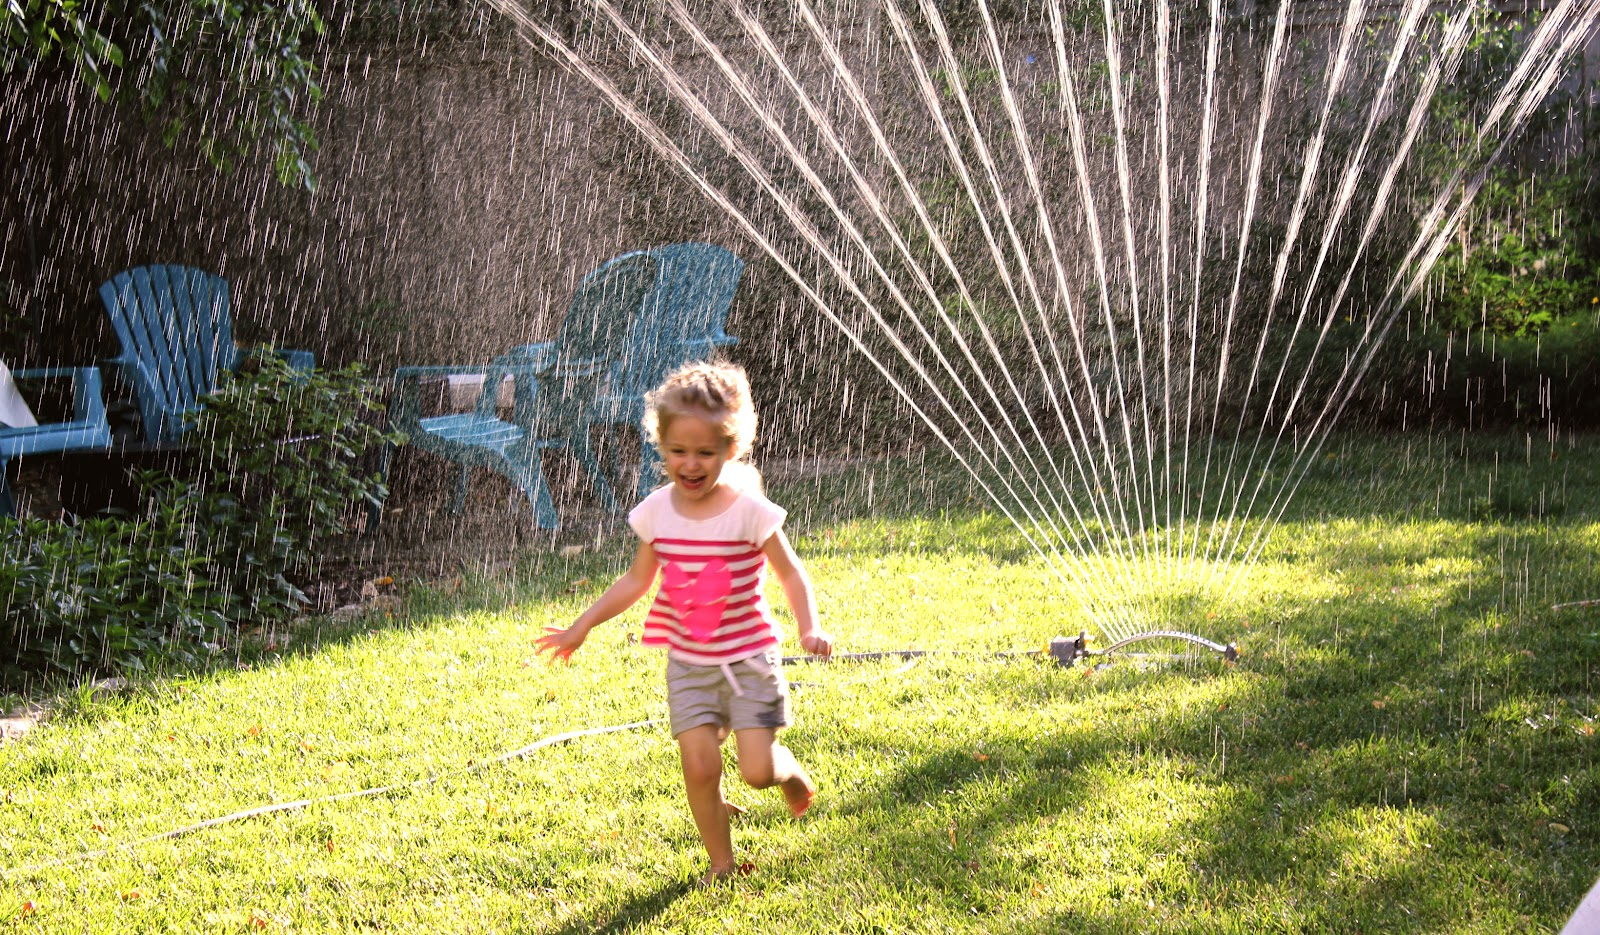 best lawn sprinkler, watering, spray pattern, stationary sprinklers, irrigation, pulsating sprinkler, oscillating, timer, irrigation systems, pressure